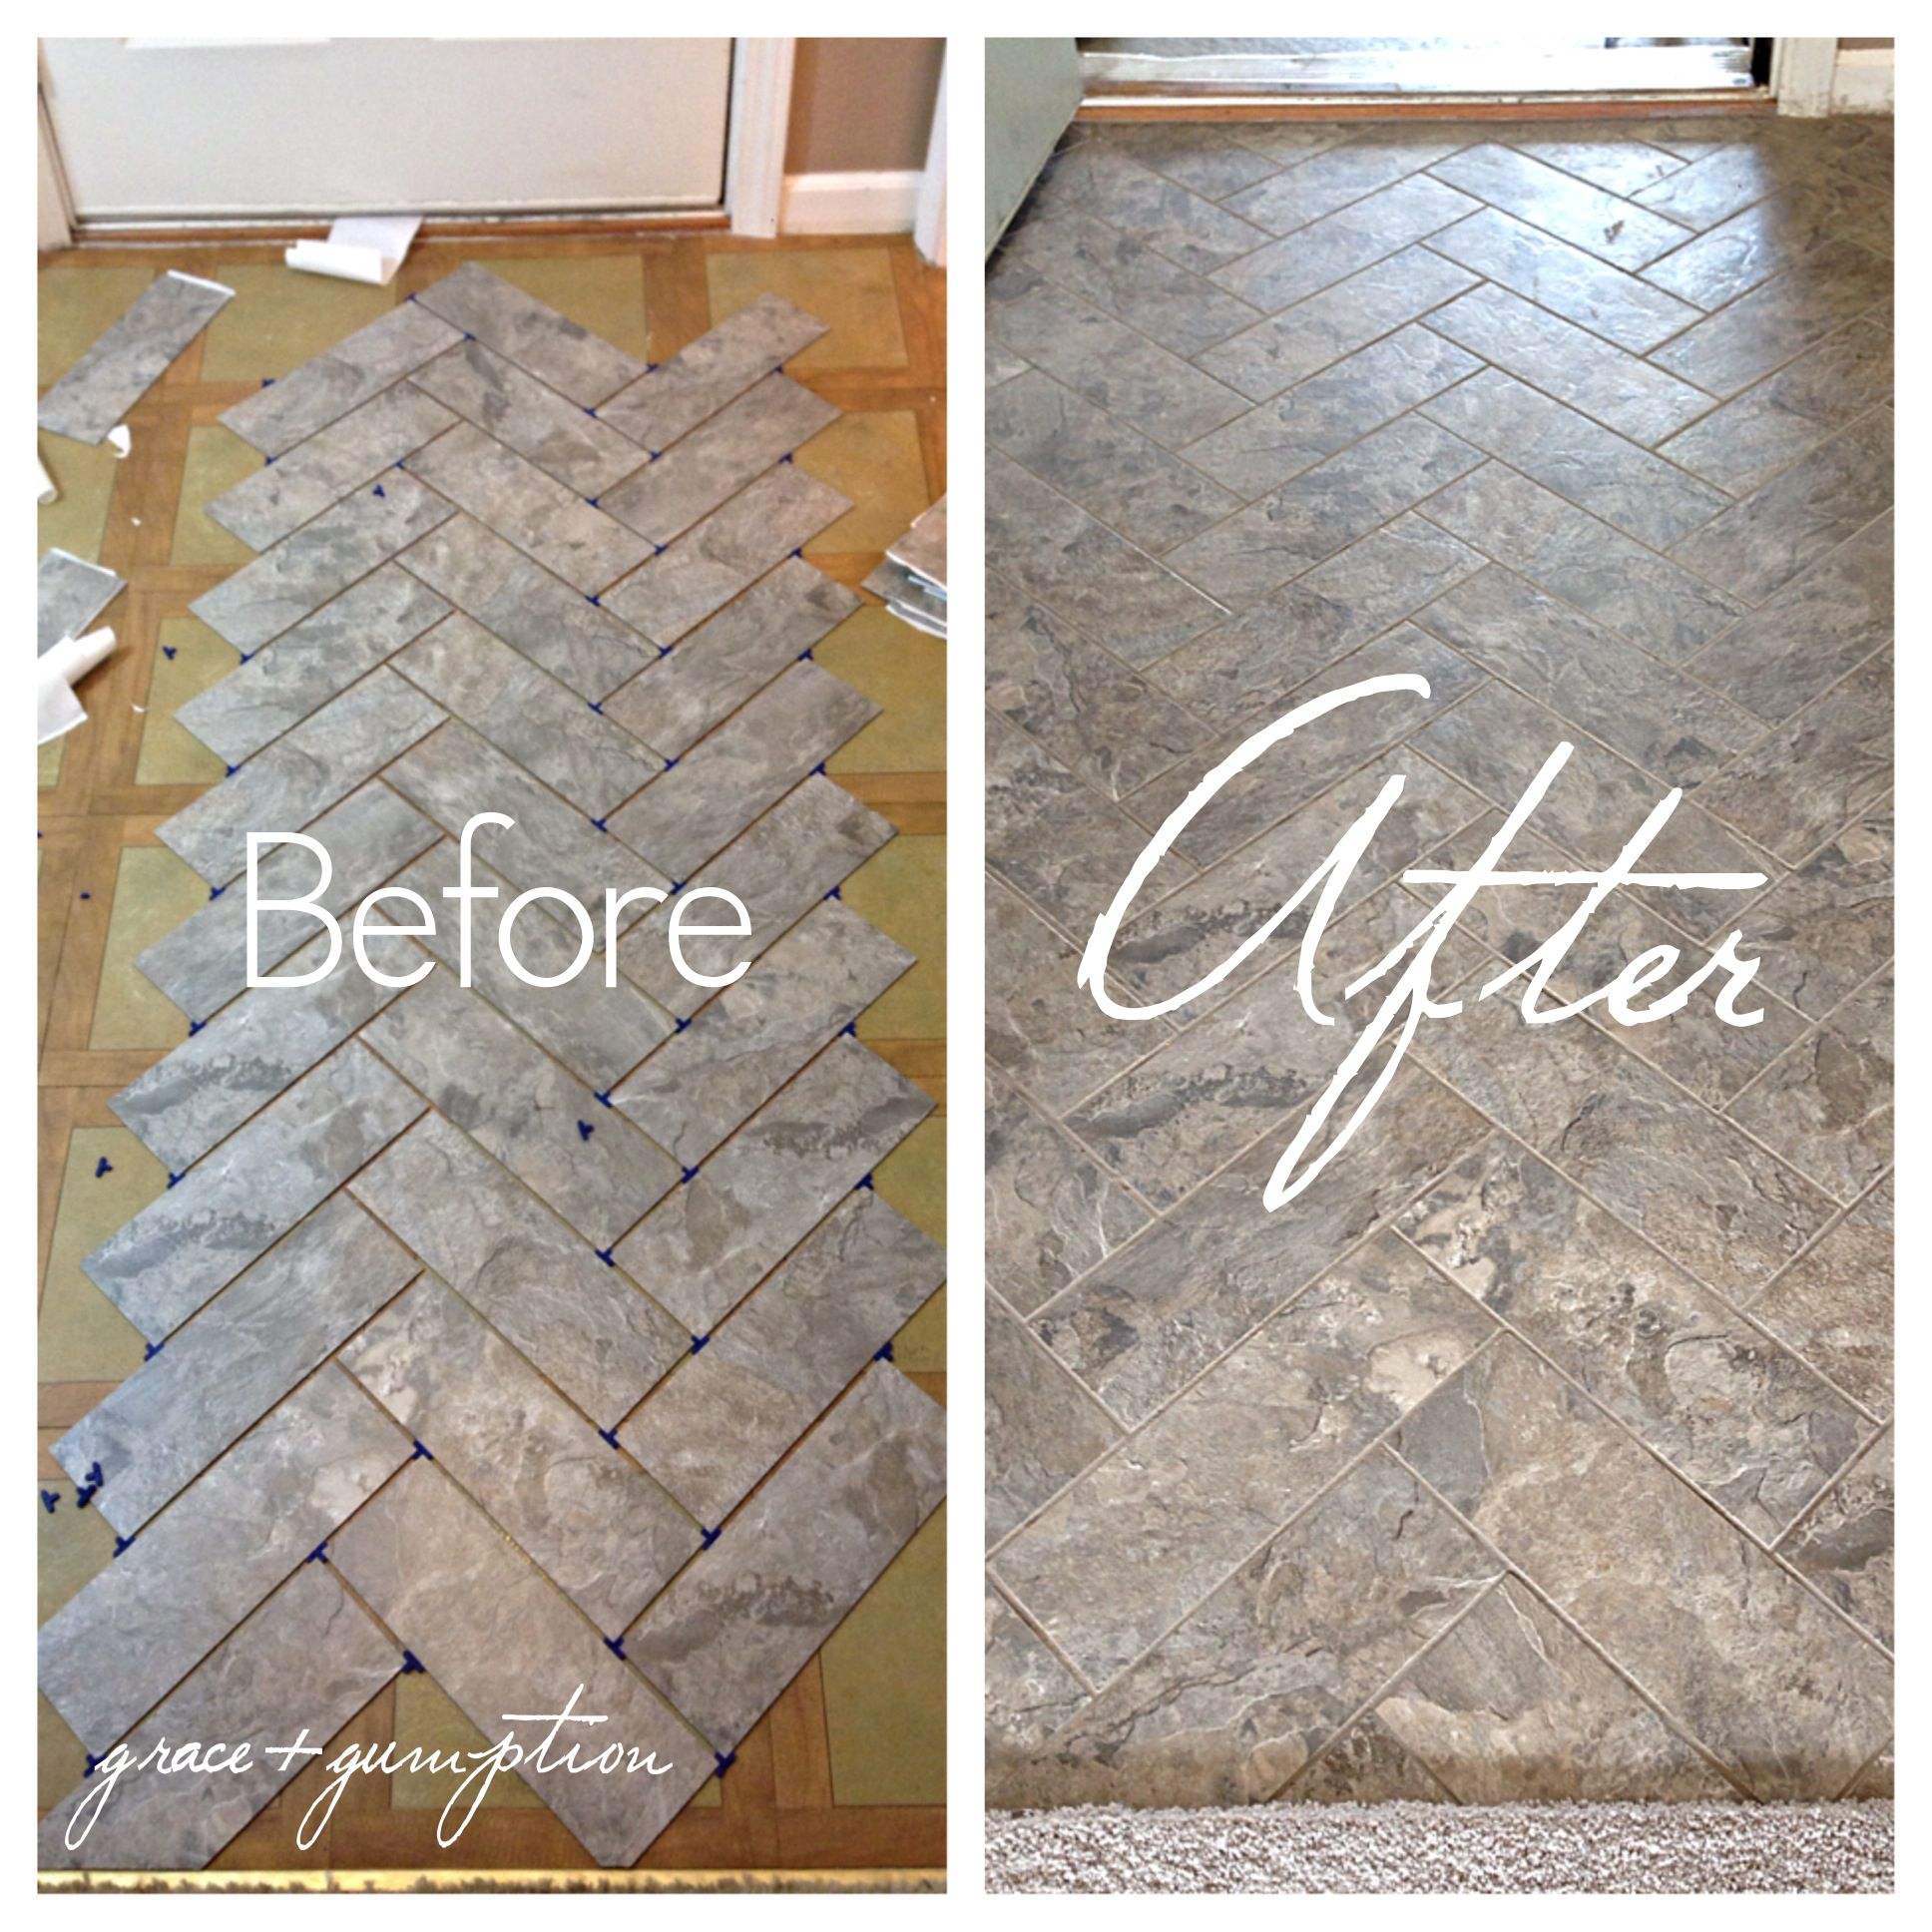 Bon DIY Herringbone Peel N Stick Tile Floor Before And After By Grace + Gumption